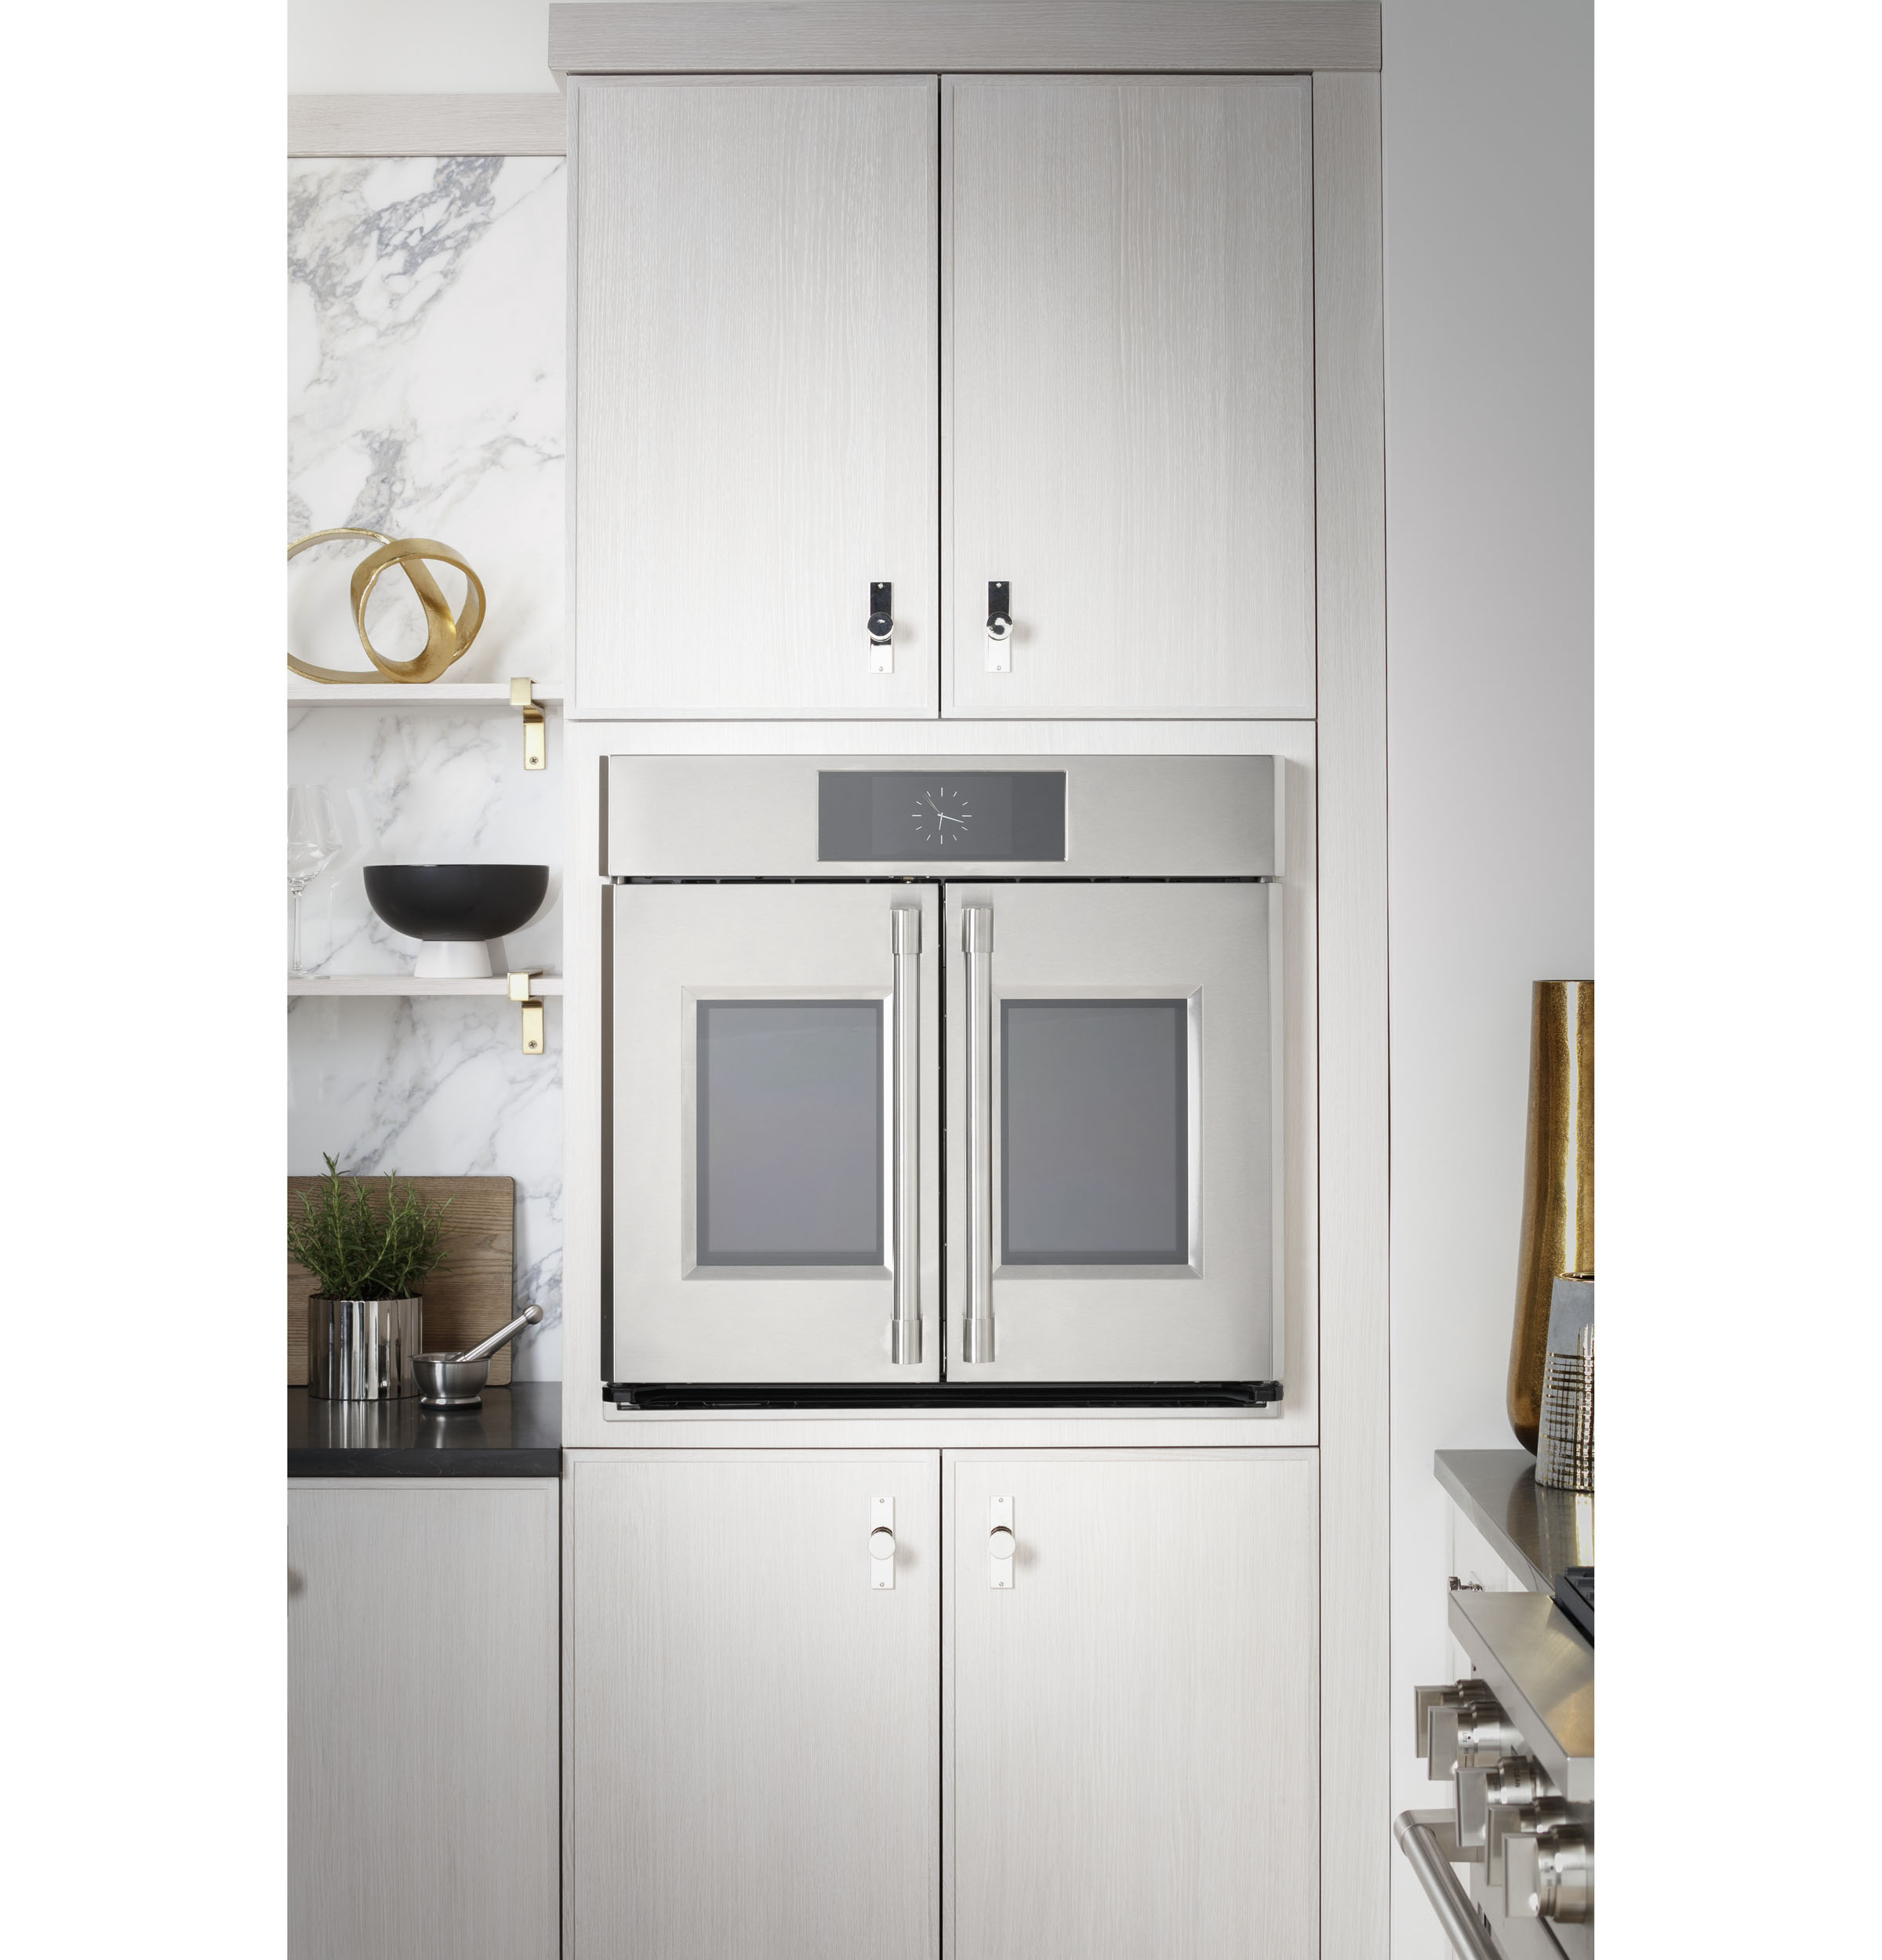 """Model: ZTDX1FPSNSS   Monogram Monogram 30"""" Smart French-Door Electric Convection Double Wall Oven Statement Collection"""